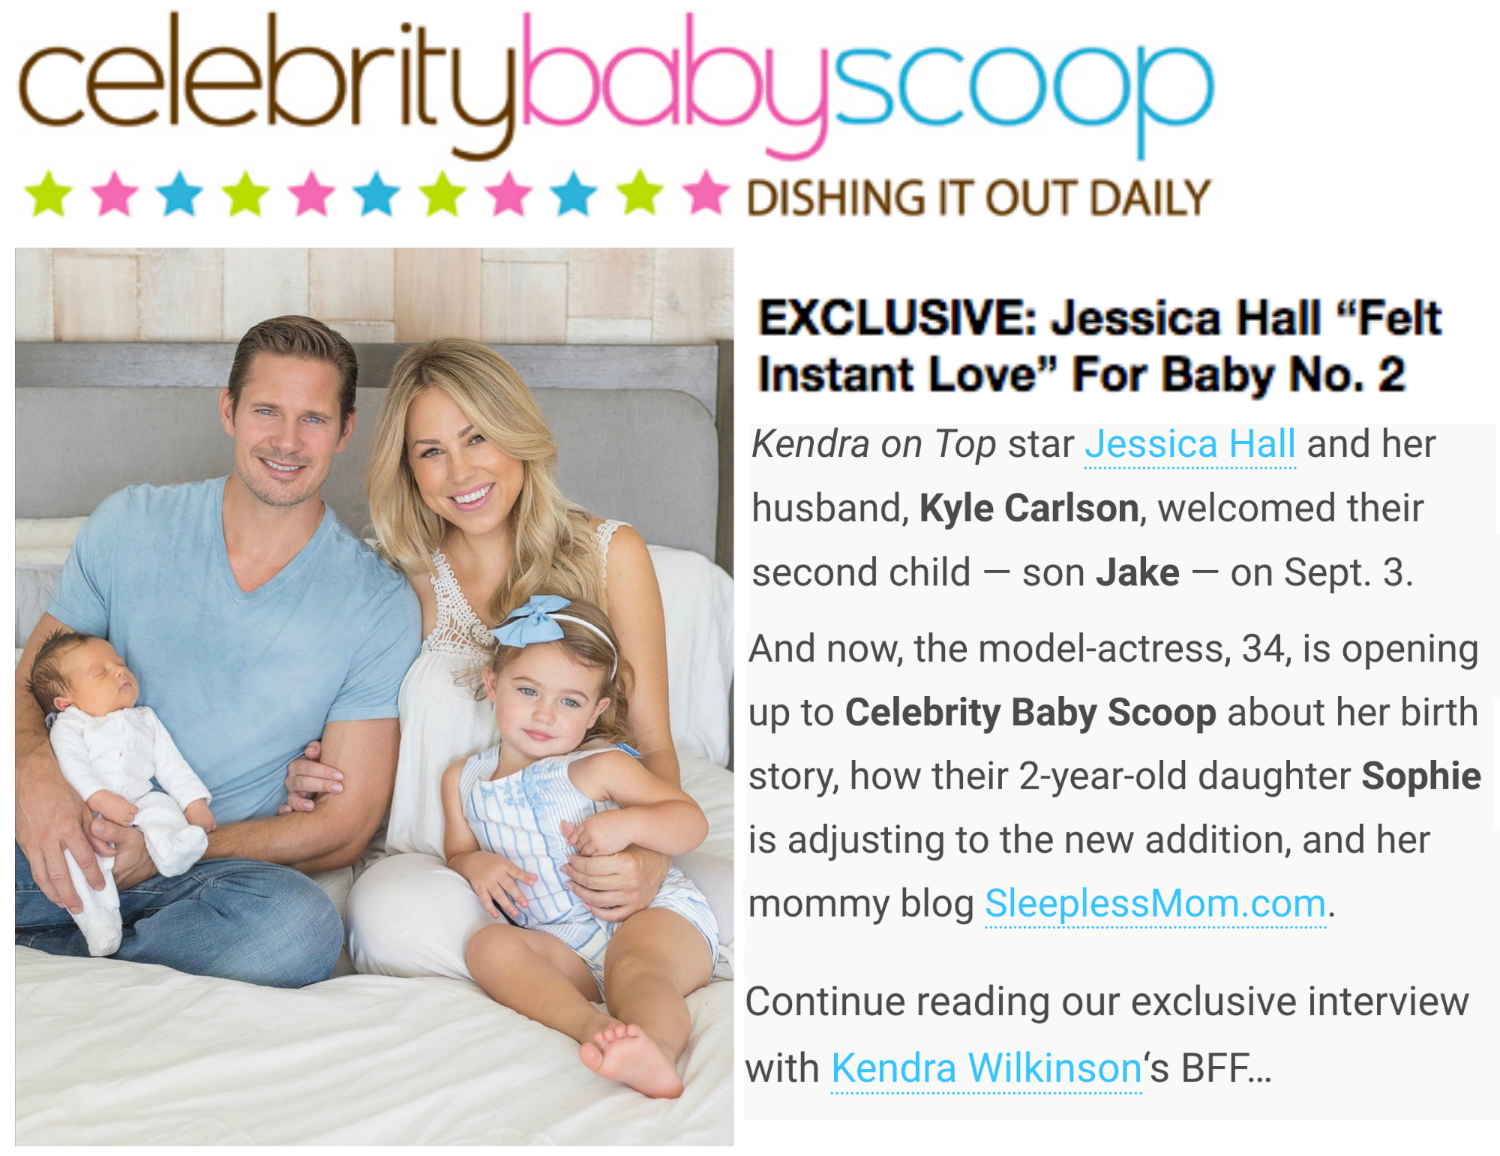 Exclusive celebrity baby scoop with Jessica Hall